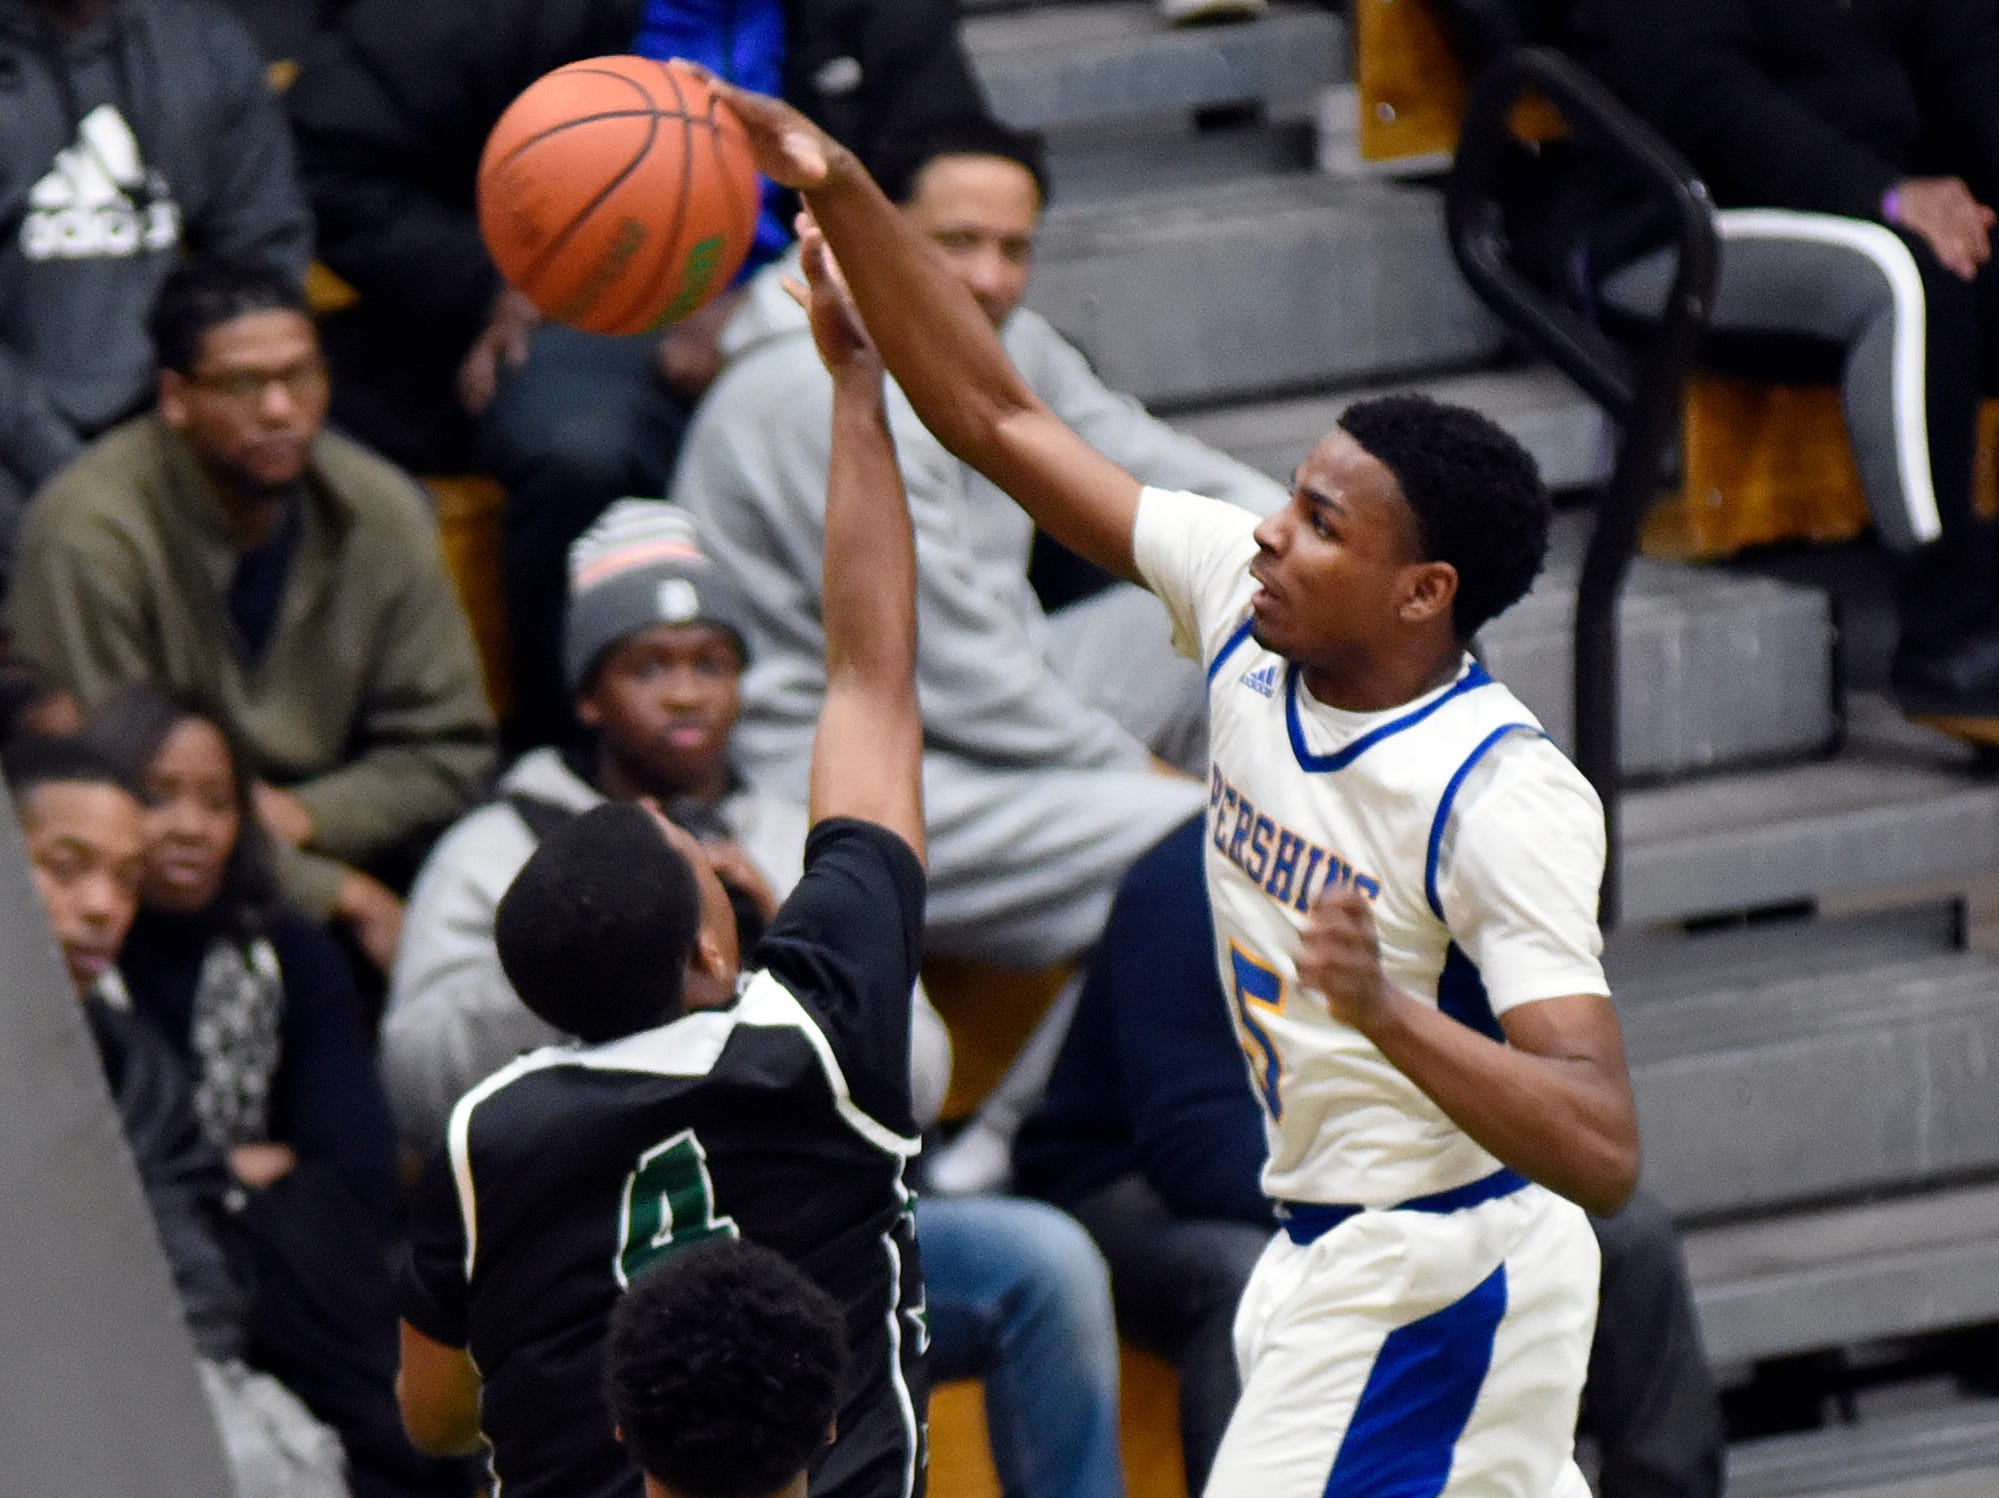 Detroit Pershing's Reggie Lawrence (5), right, blocks the shot of Cass Tech's Kyle LeGreair (4) during the second quarter, Tuesday, Feb. 12, 2019, in a PSL boys basketball semifinal held at Cass Tech HS in Detroit.  (Jose Juarez/Special to Detroit News)